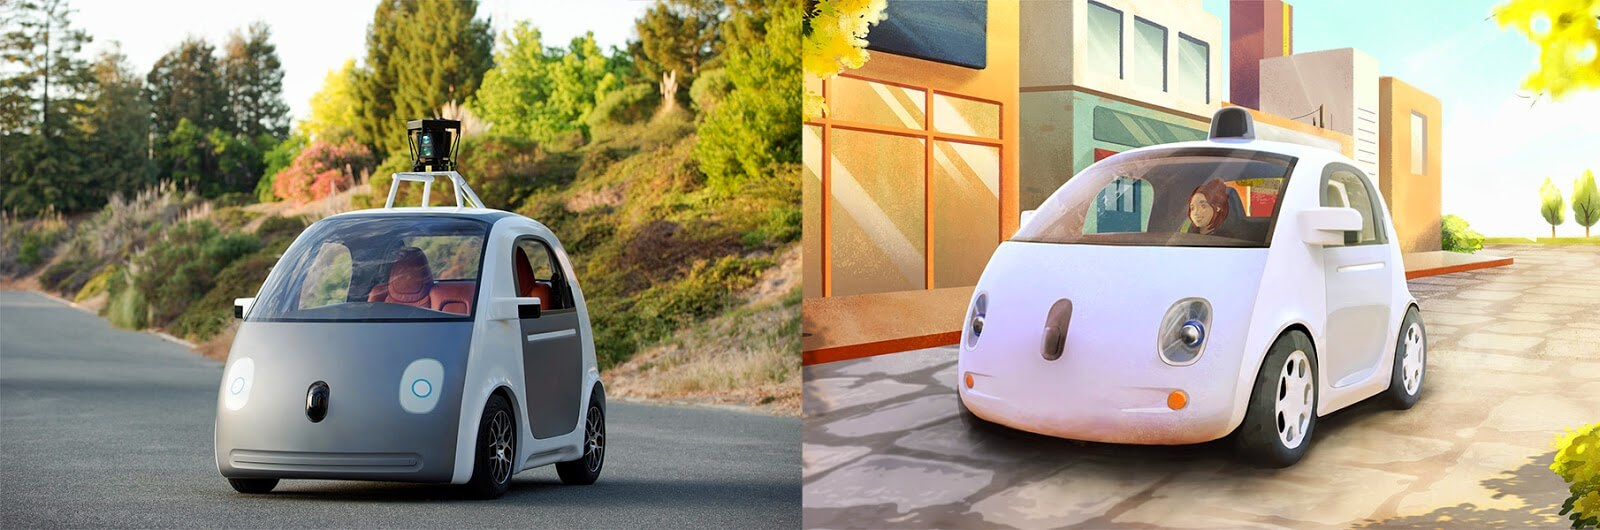 google-car-vehicle-prototype